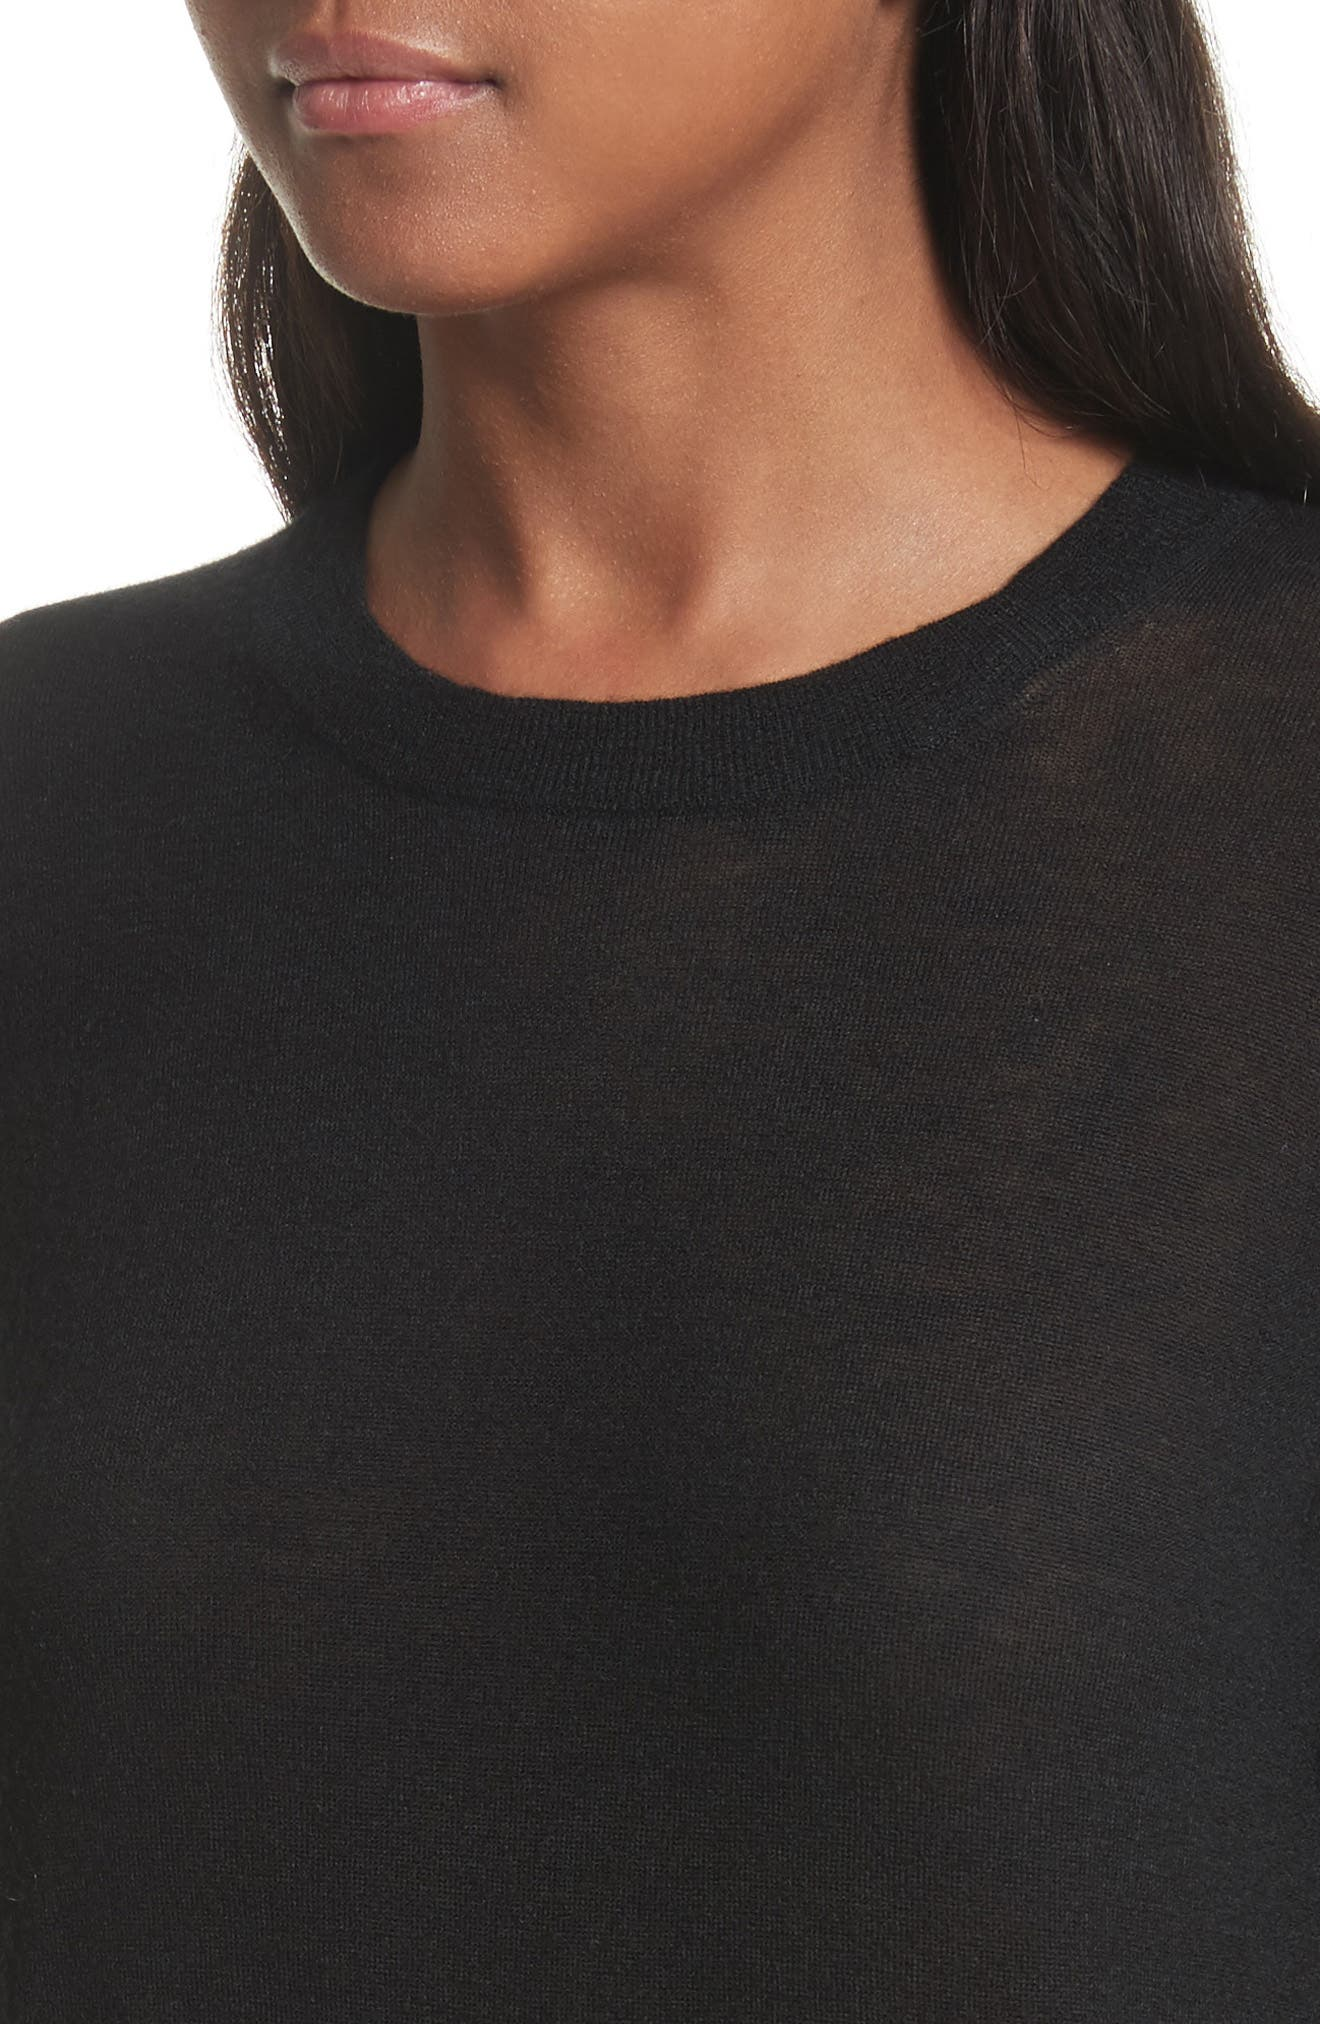 Crewneck Cashmere Sweater,                             Alternate thumbnail 4, color,                             Black